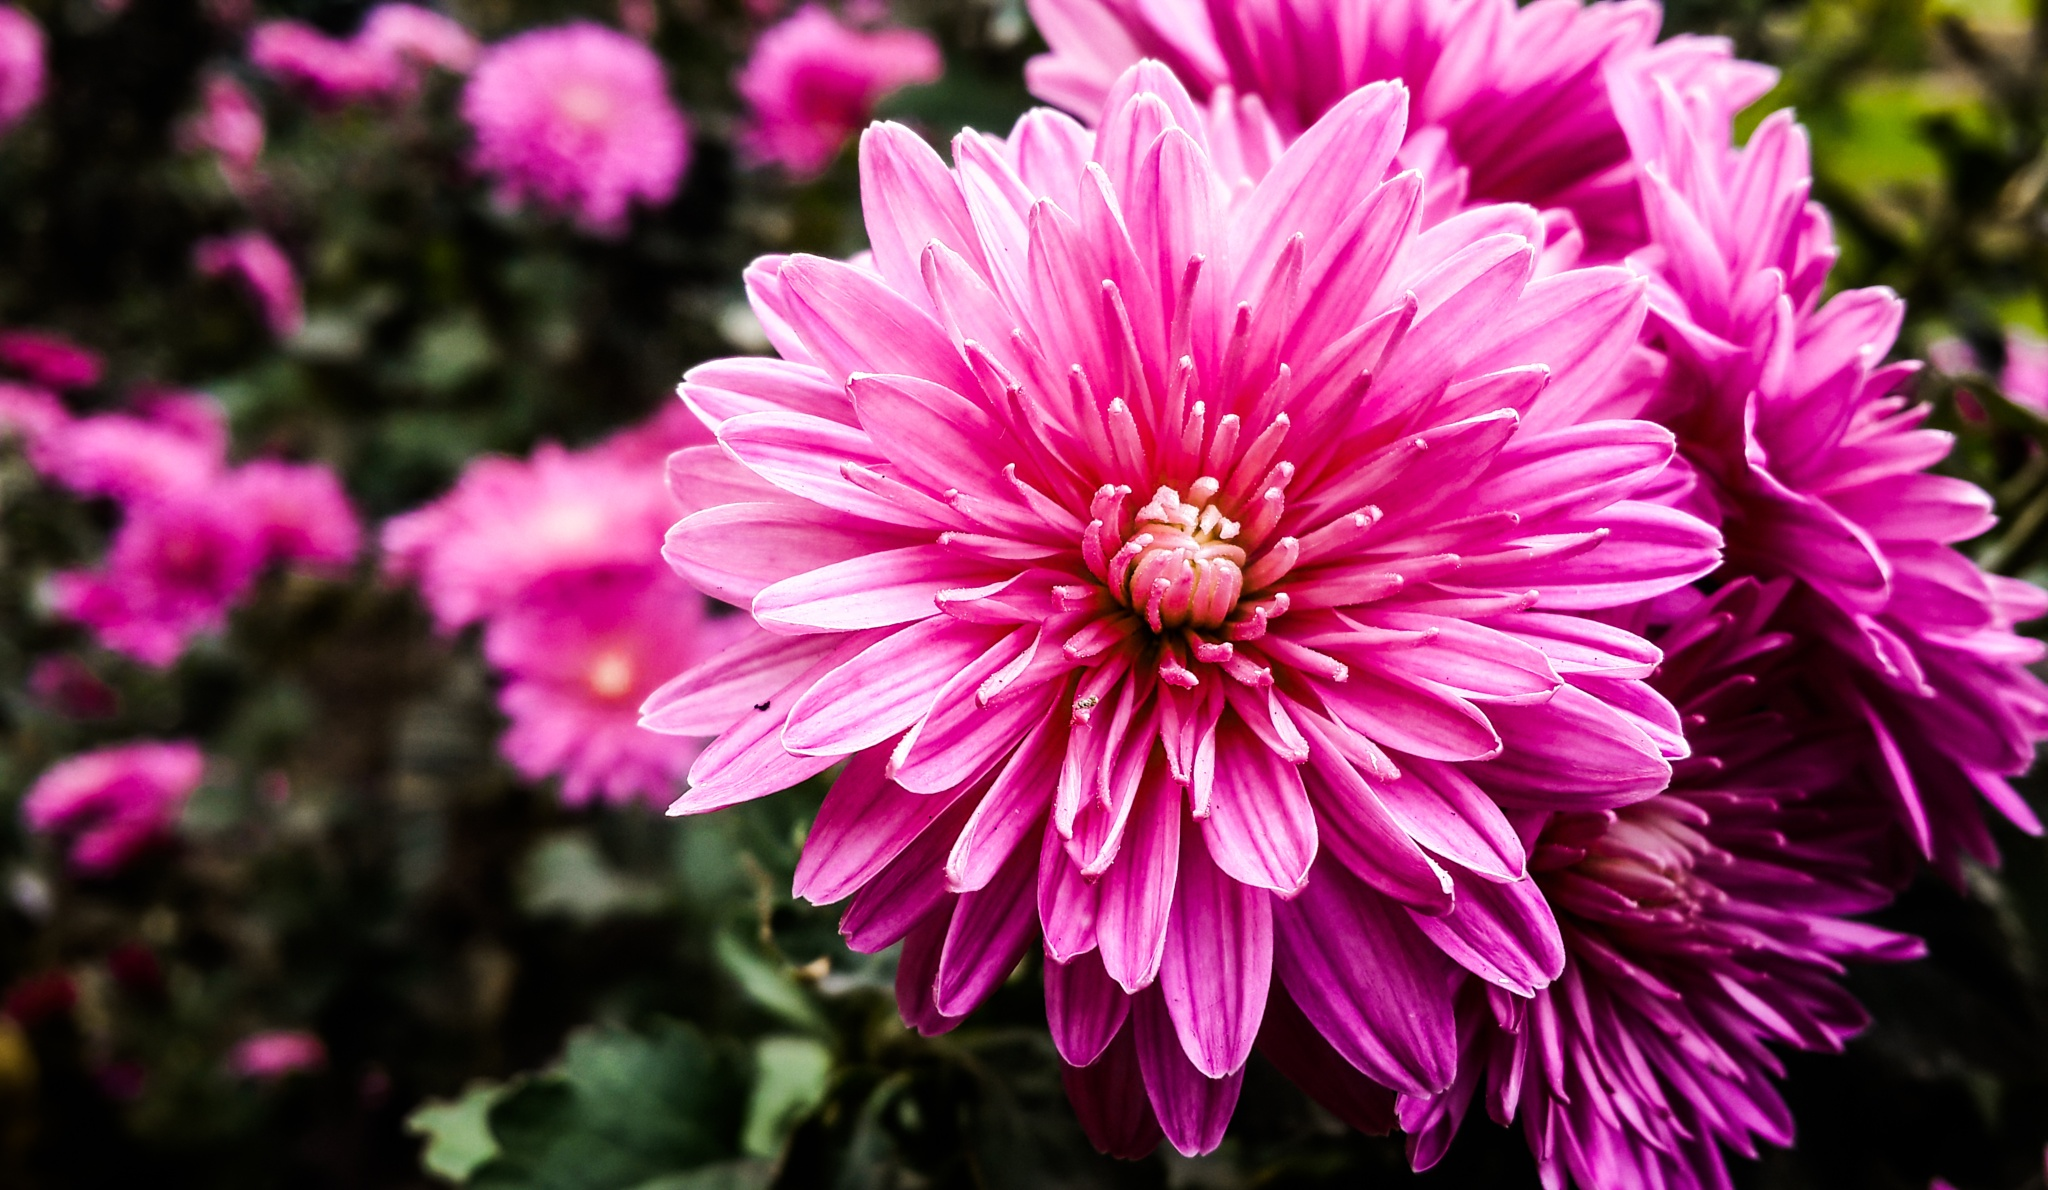 Flowers of my by Husam Hikmat